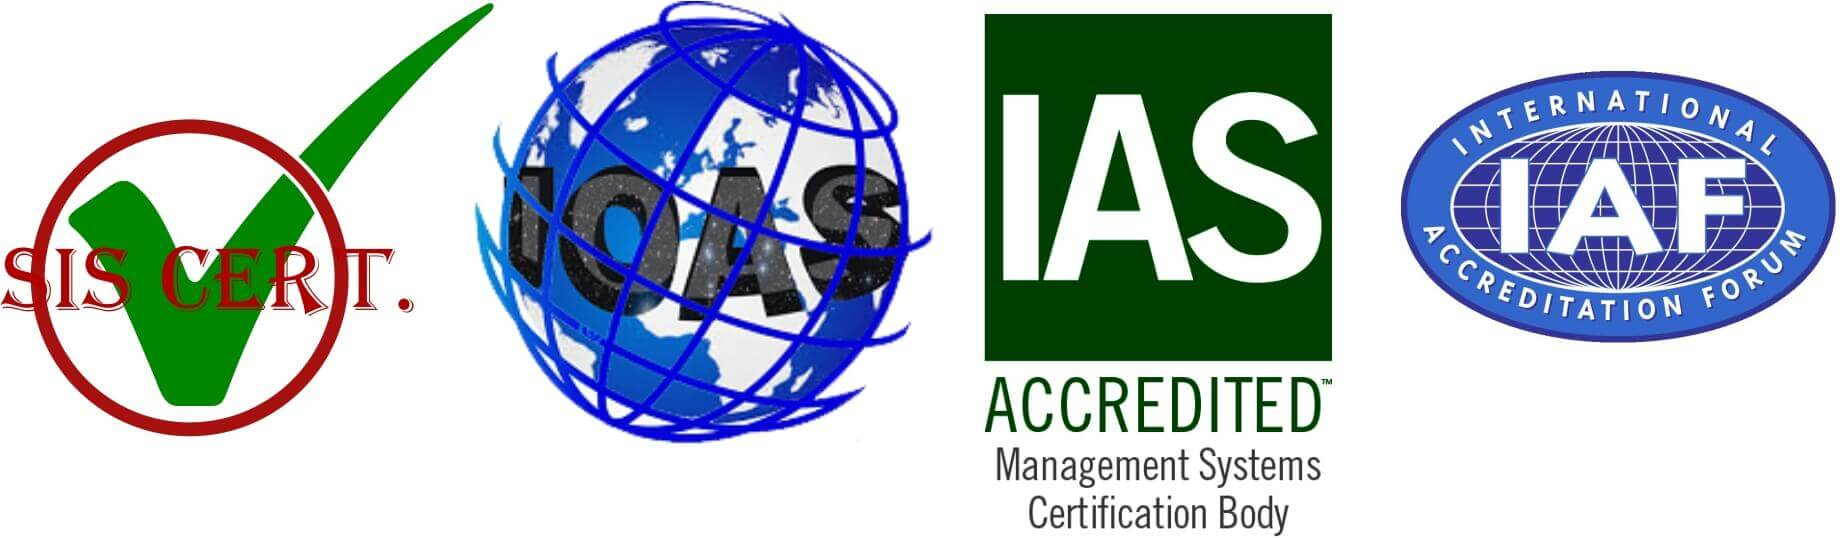 Our Accreditation